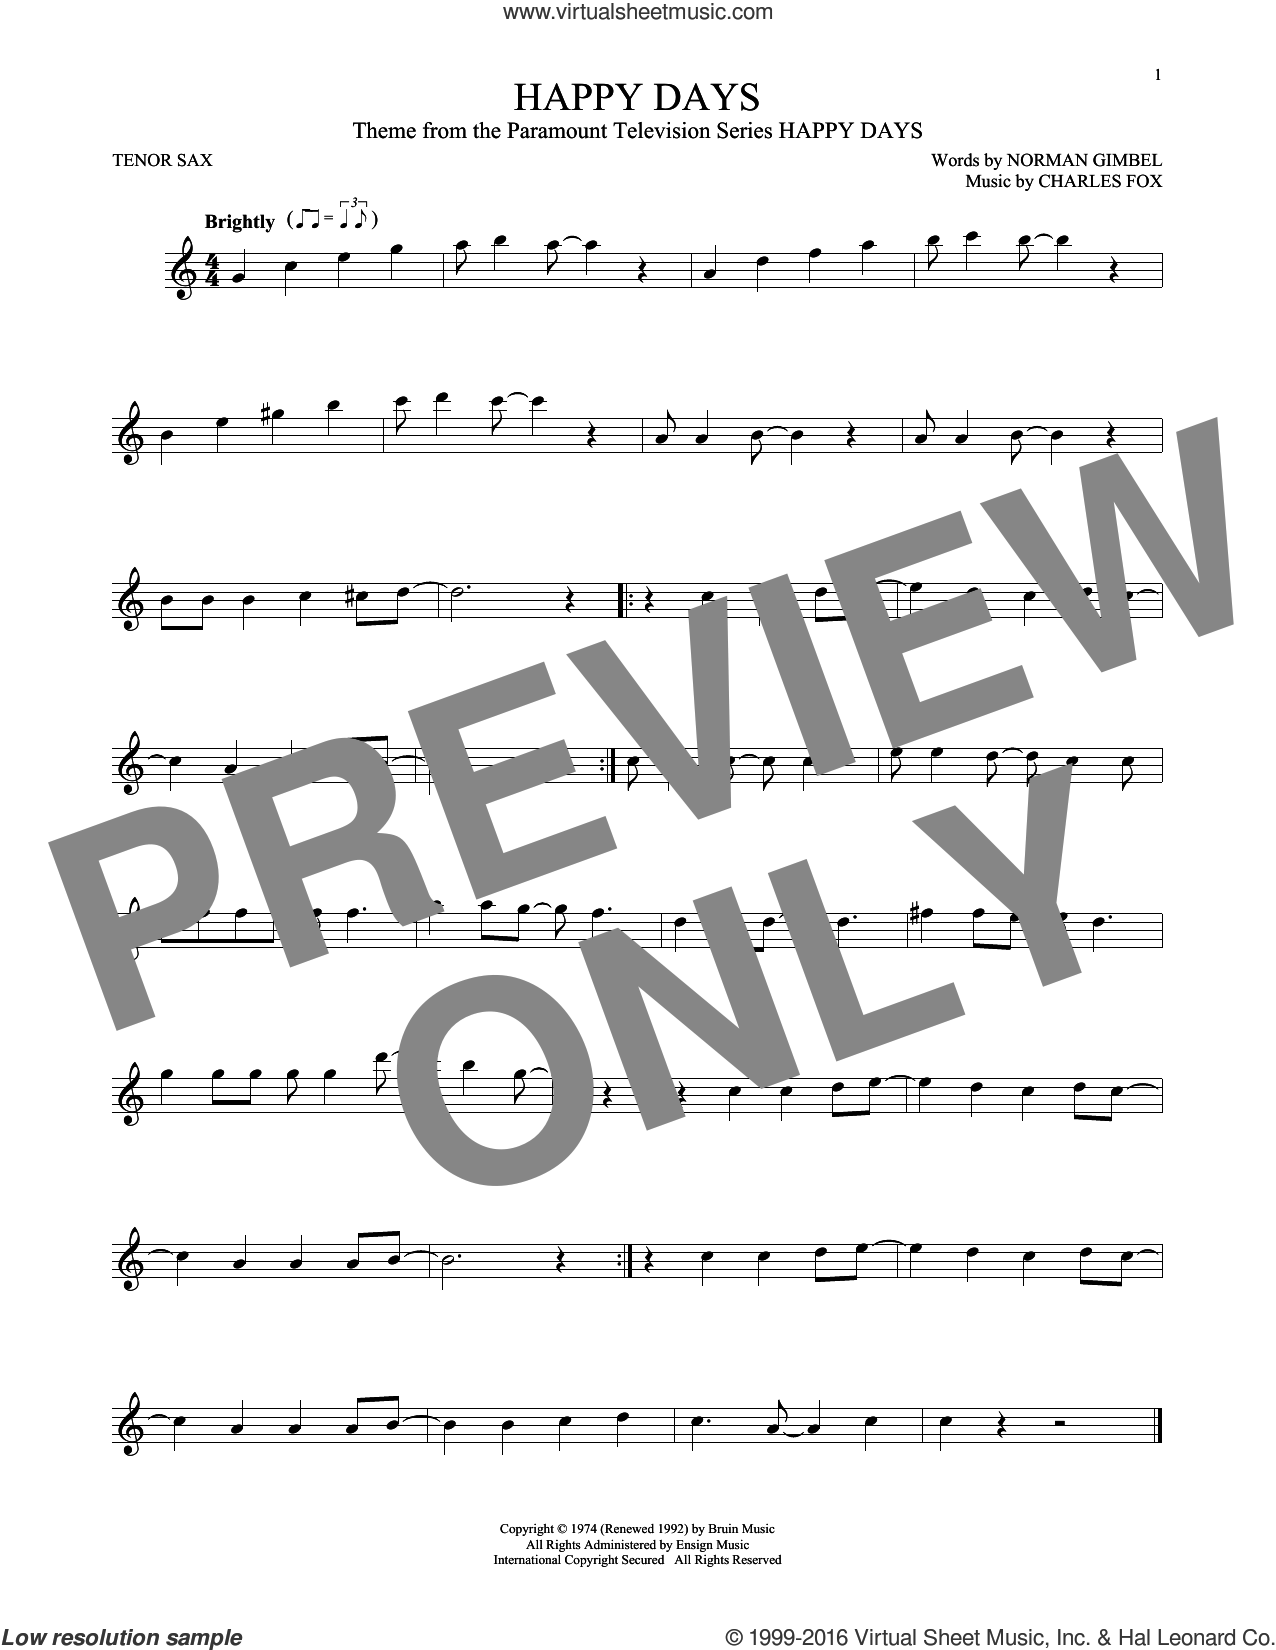 Happy Days sheet music for tenor saxophone solo by Pratt and McClain, Charles Fox and Norman Gimbel. Score Image Preview.